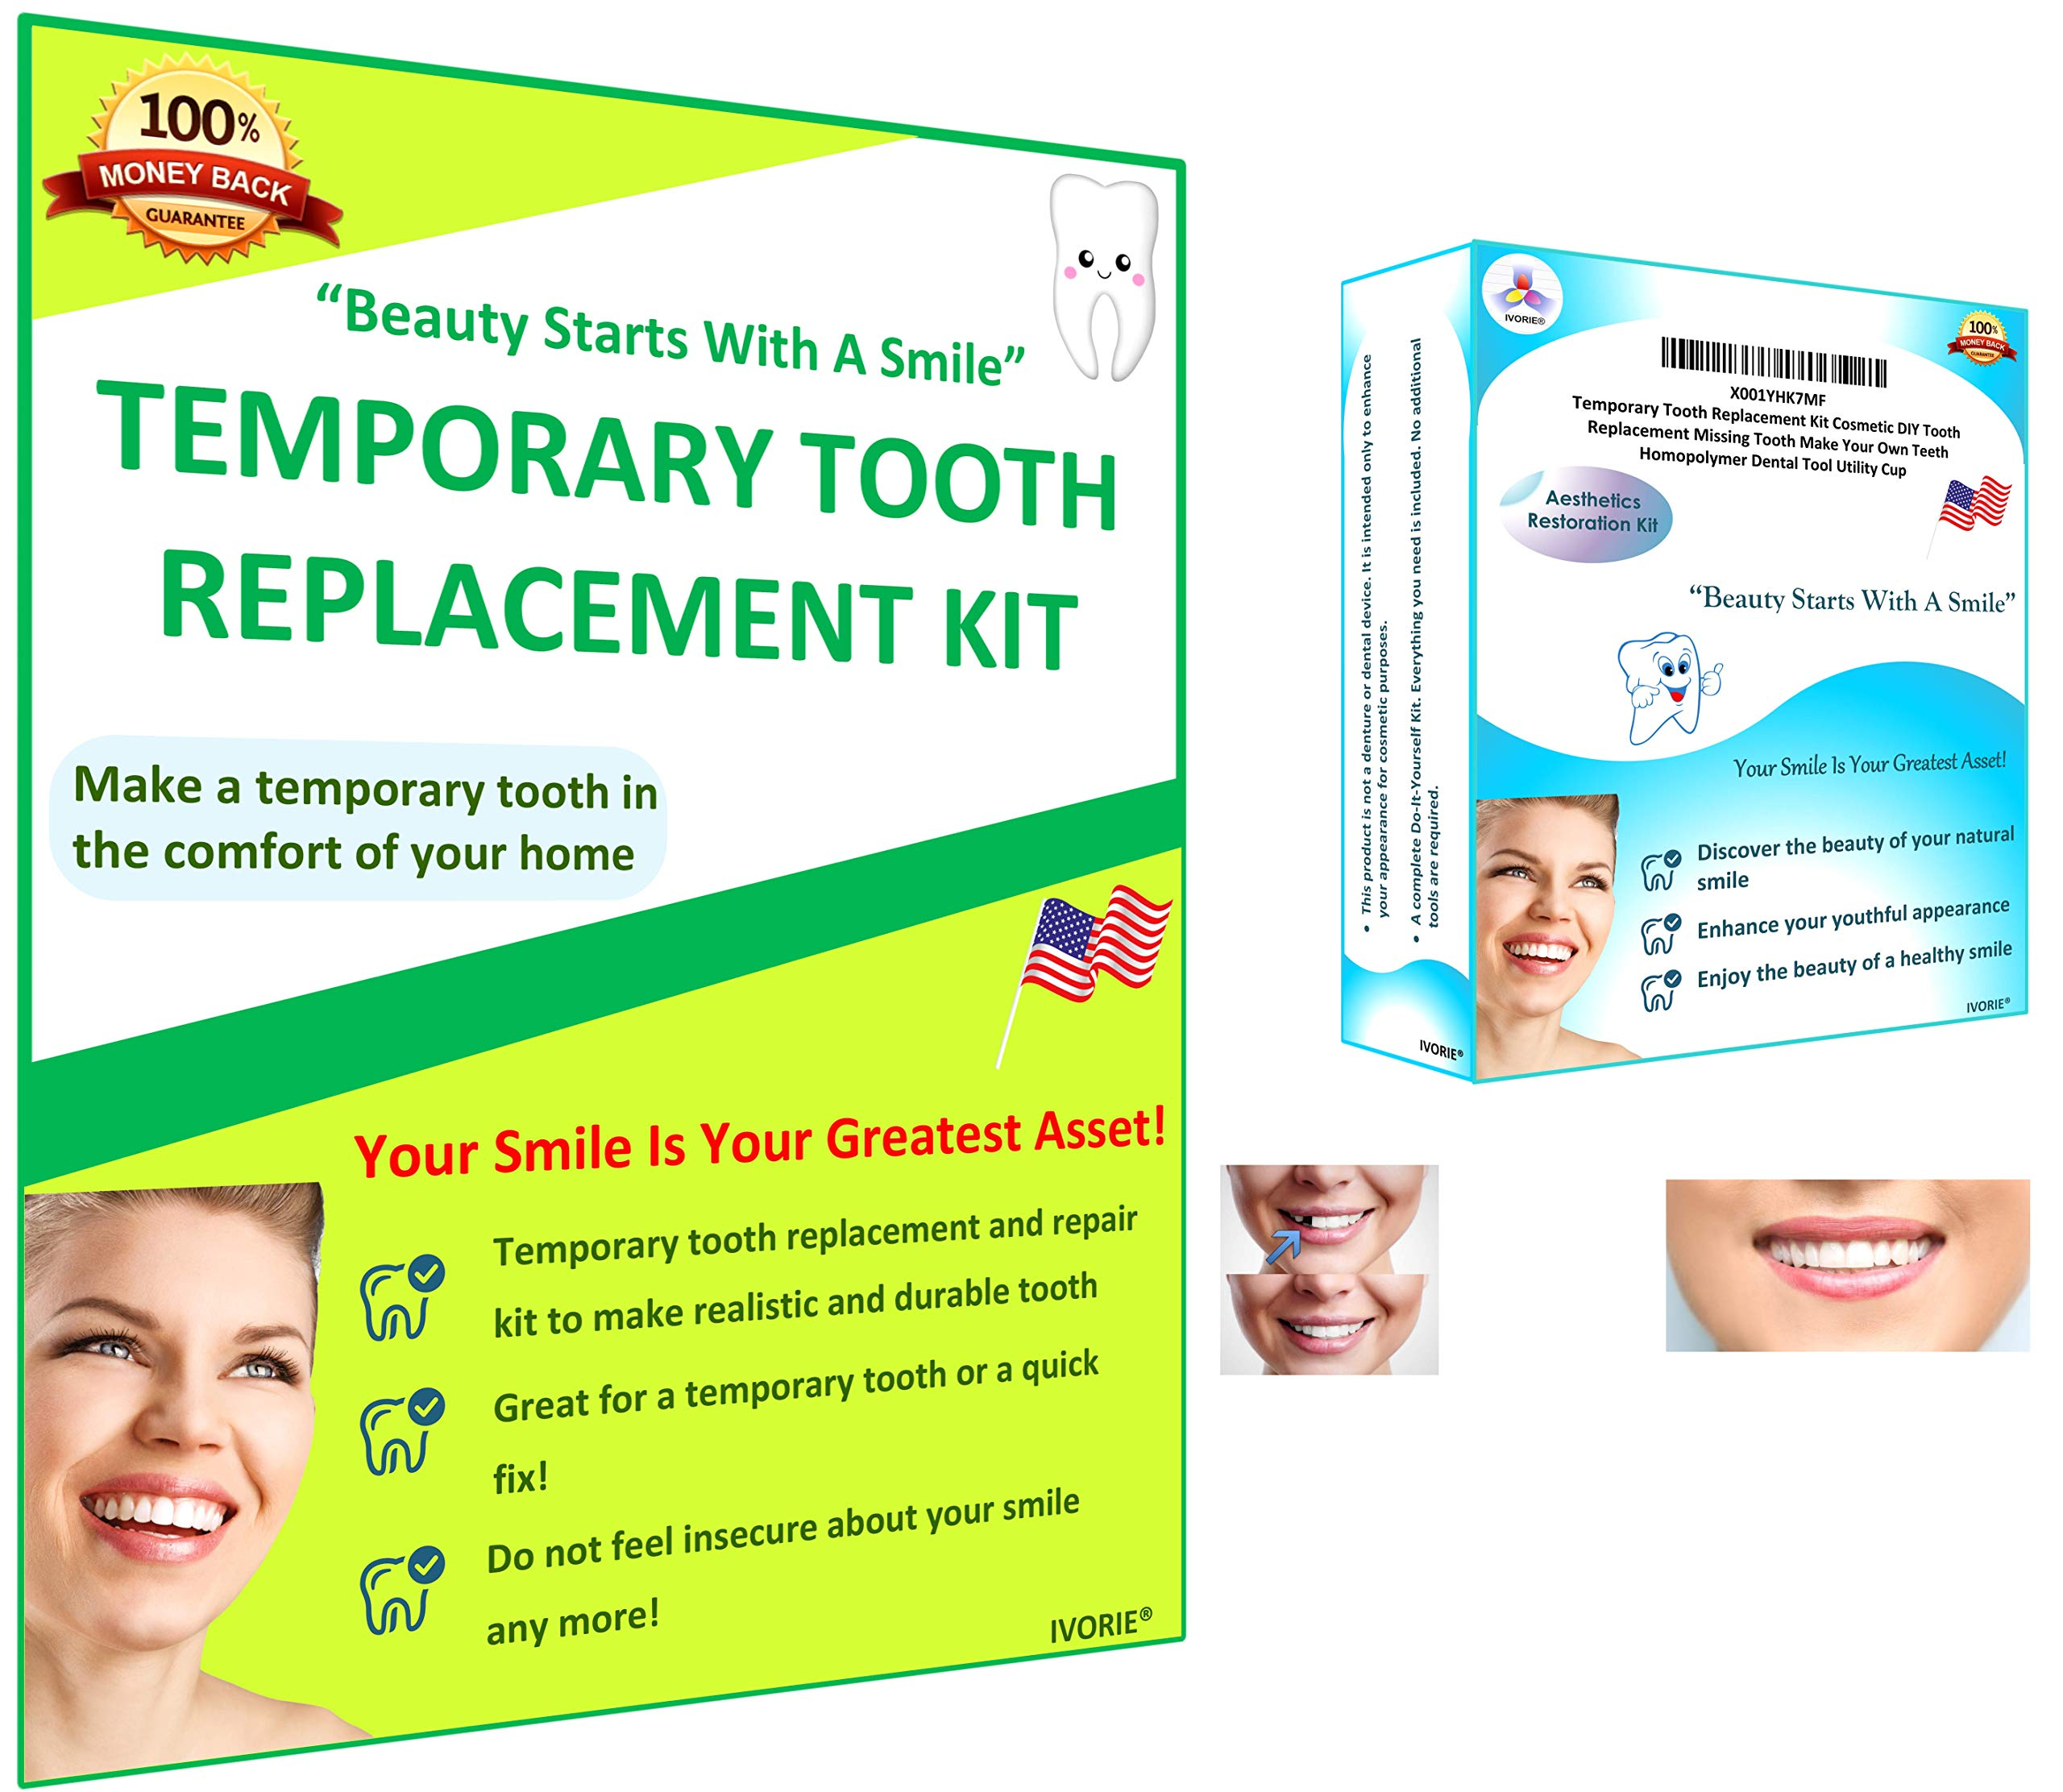 IVORIE Home Temporary Tooth Replacement Kit Cosmetic DIY Teeth Replacement Missing Tooth Make Your Own Teeth Smile Better by IVORIE